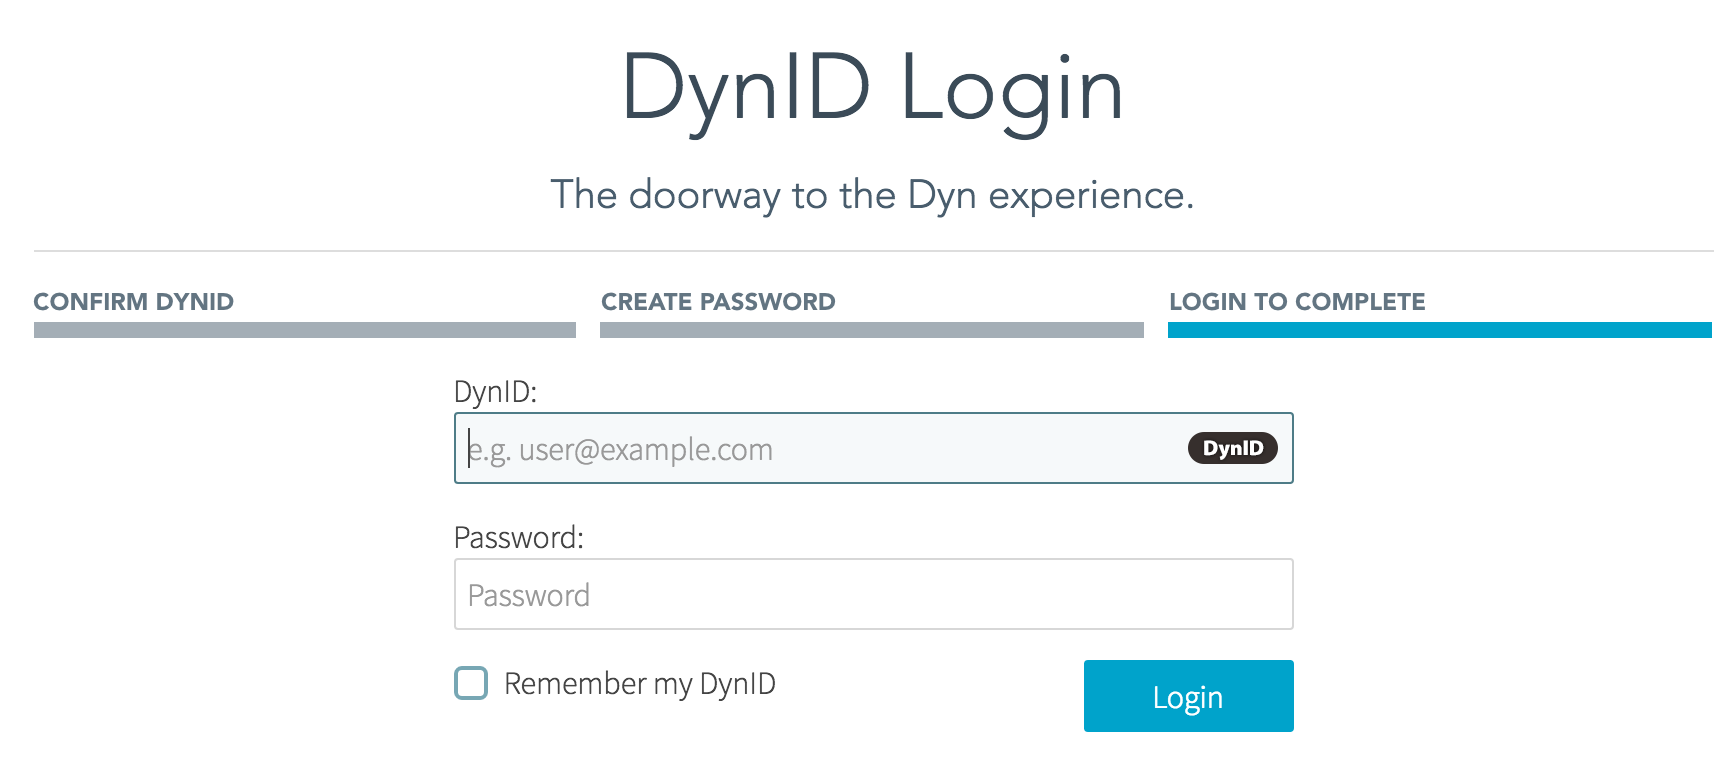 Login with new DynID password